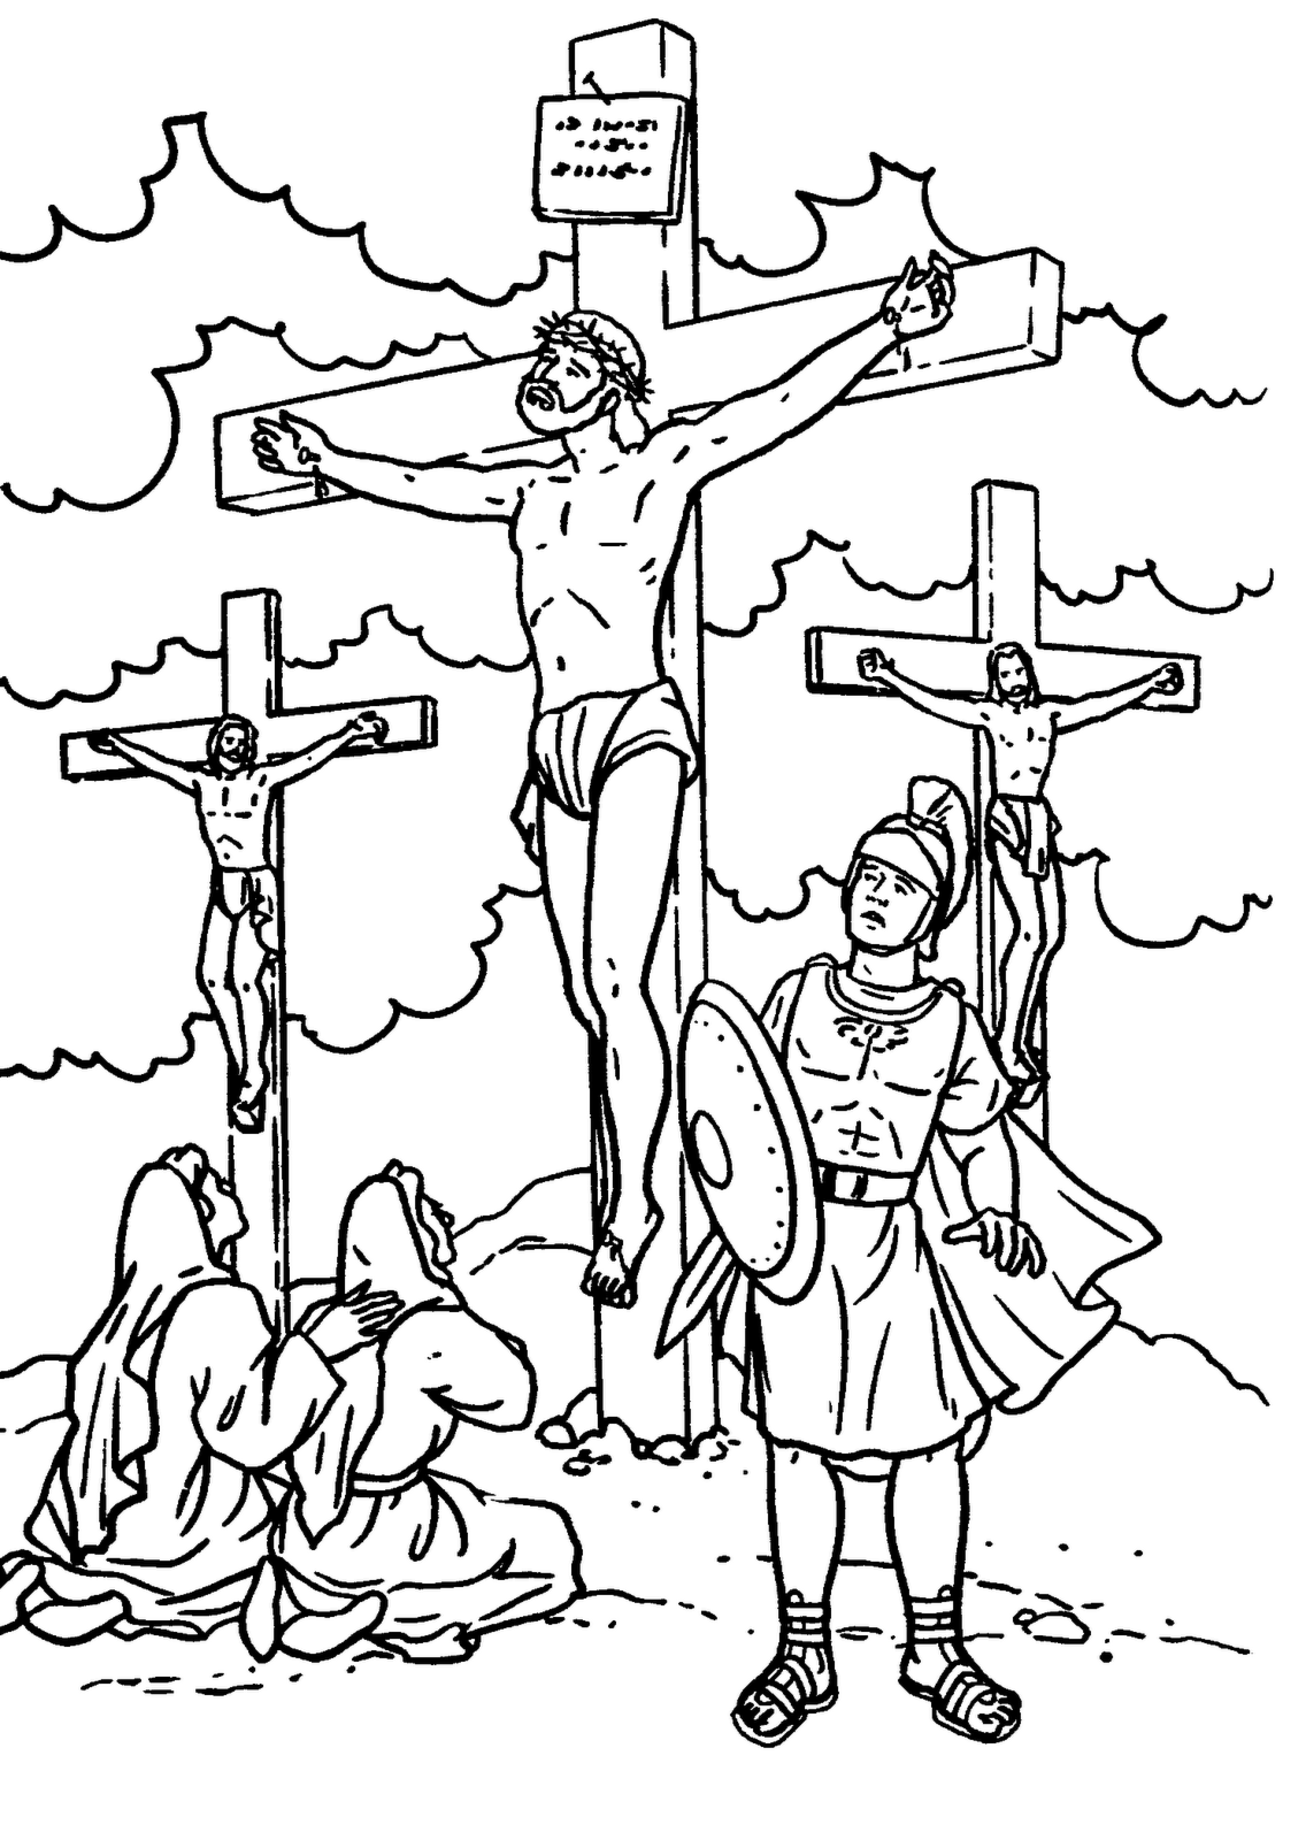 coloring sheet jesus the huddle coloring pages sheet jesus coloring